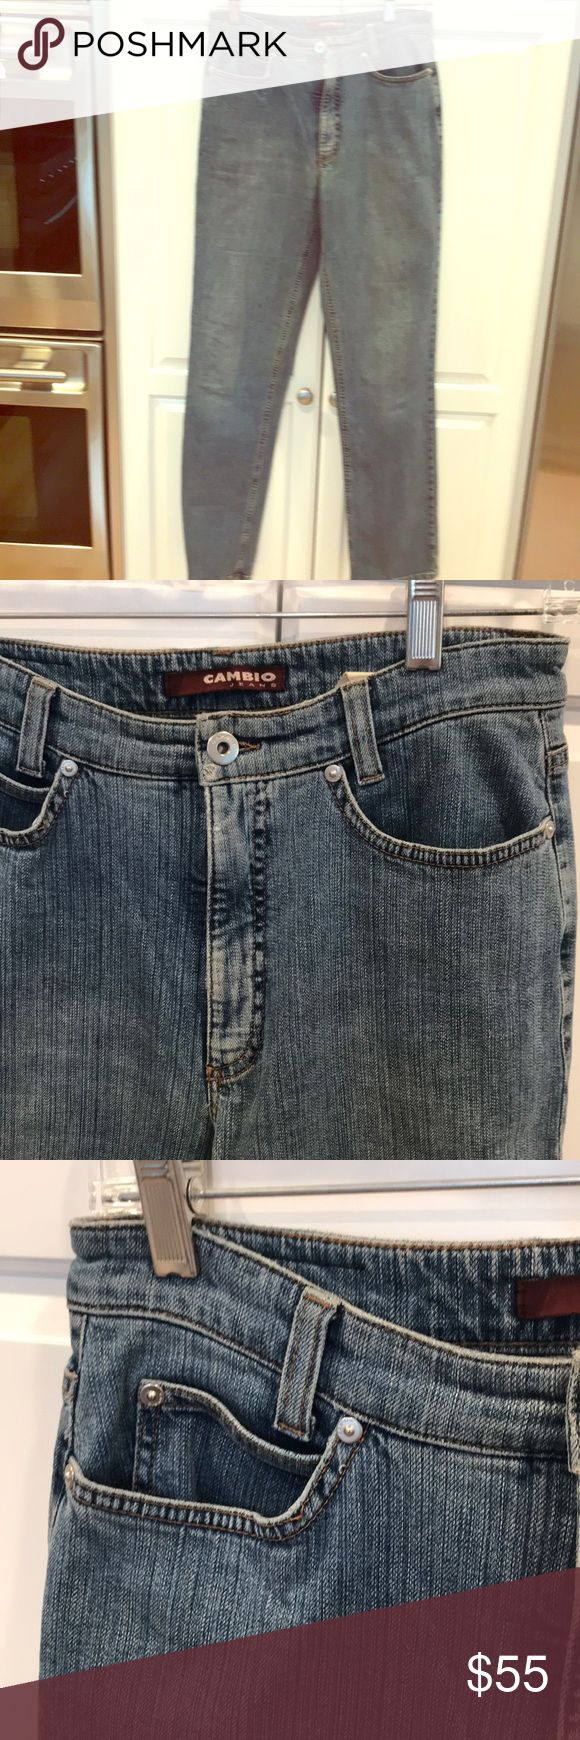 Cambio jeans. Stone washed blue. Stretch. Size 8 Cambio jeans. Stone washed jeans. Sharon cut. 5 pocket front zipper. Stretch. Size 8 Cambio jeans Jeans Straight Leg